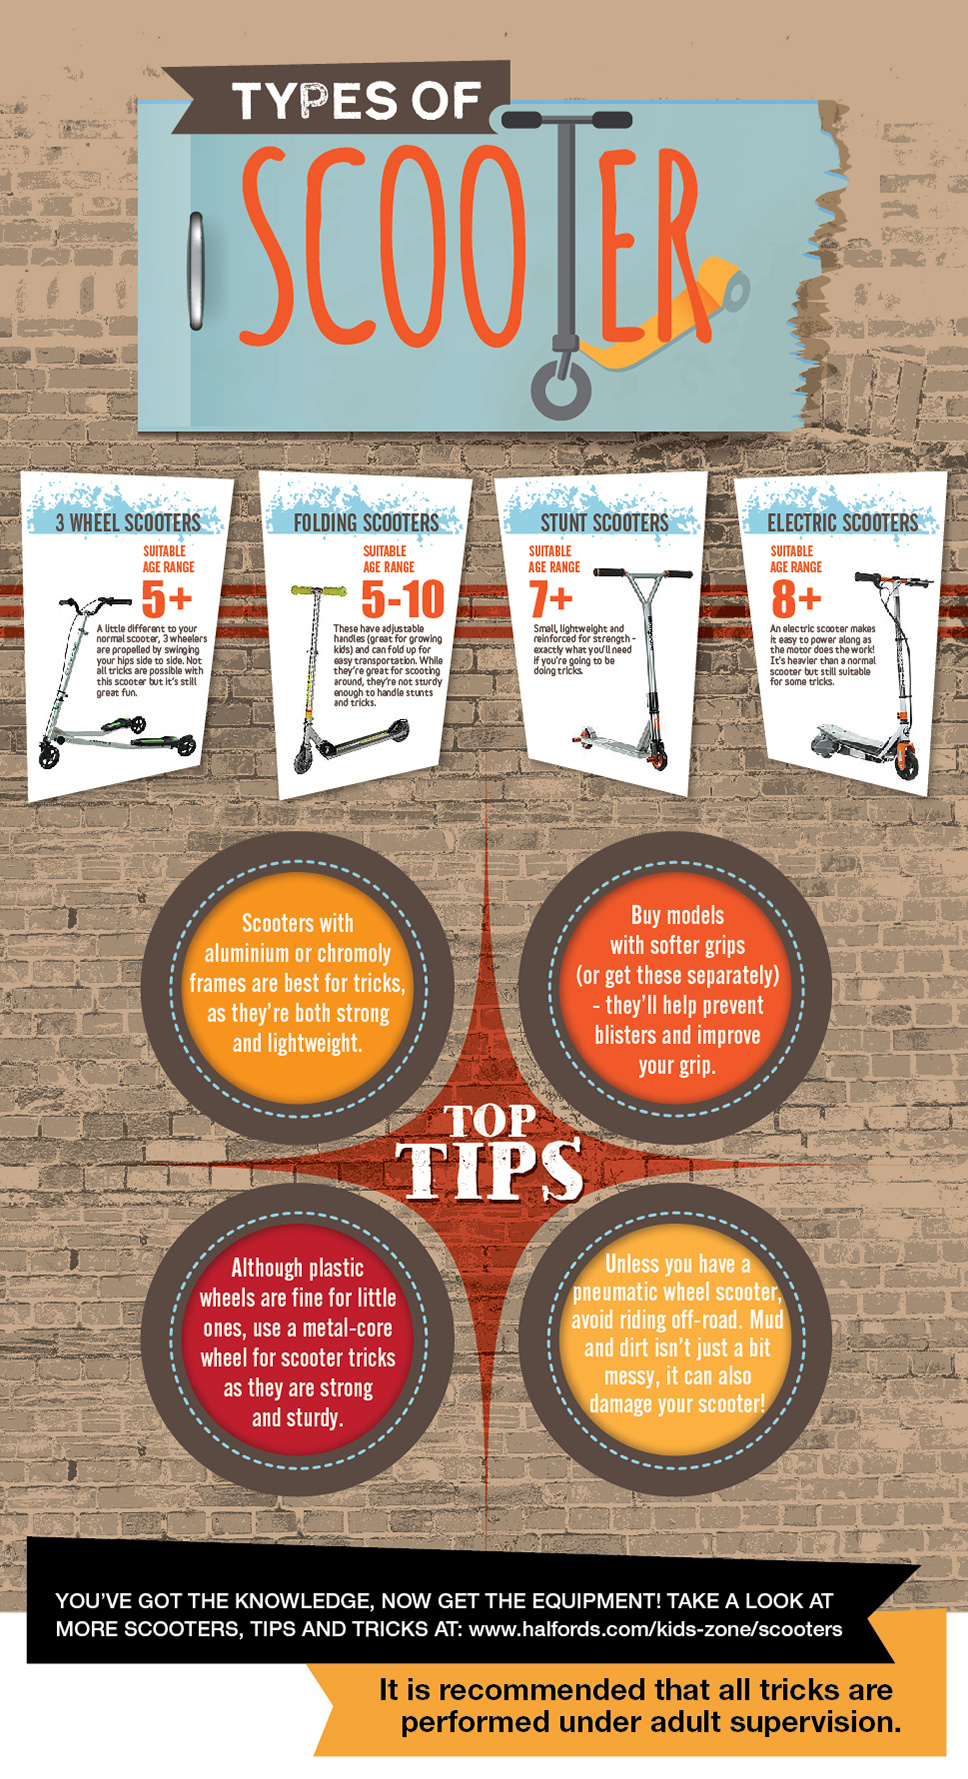 Halfords_Scooter_Infographic-5